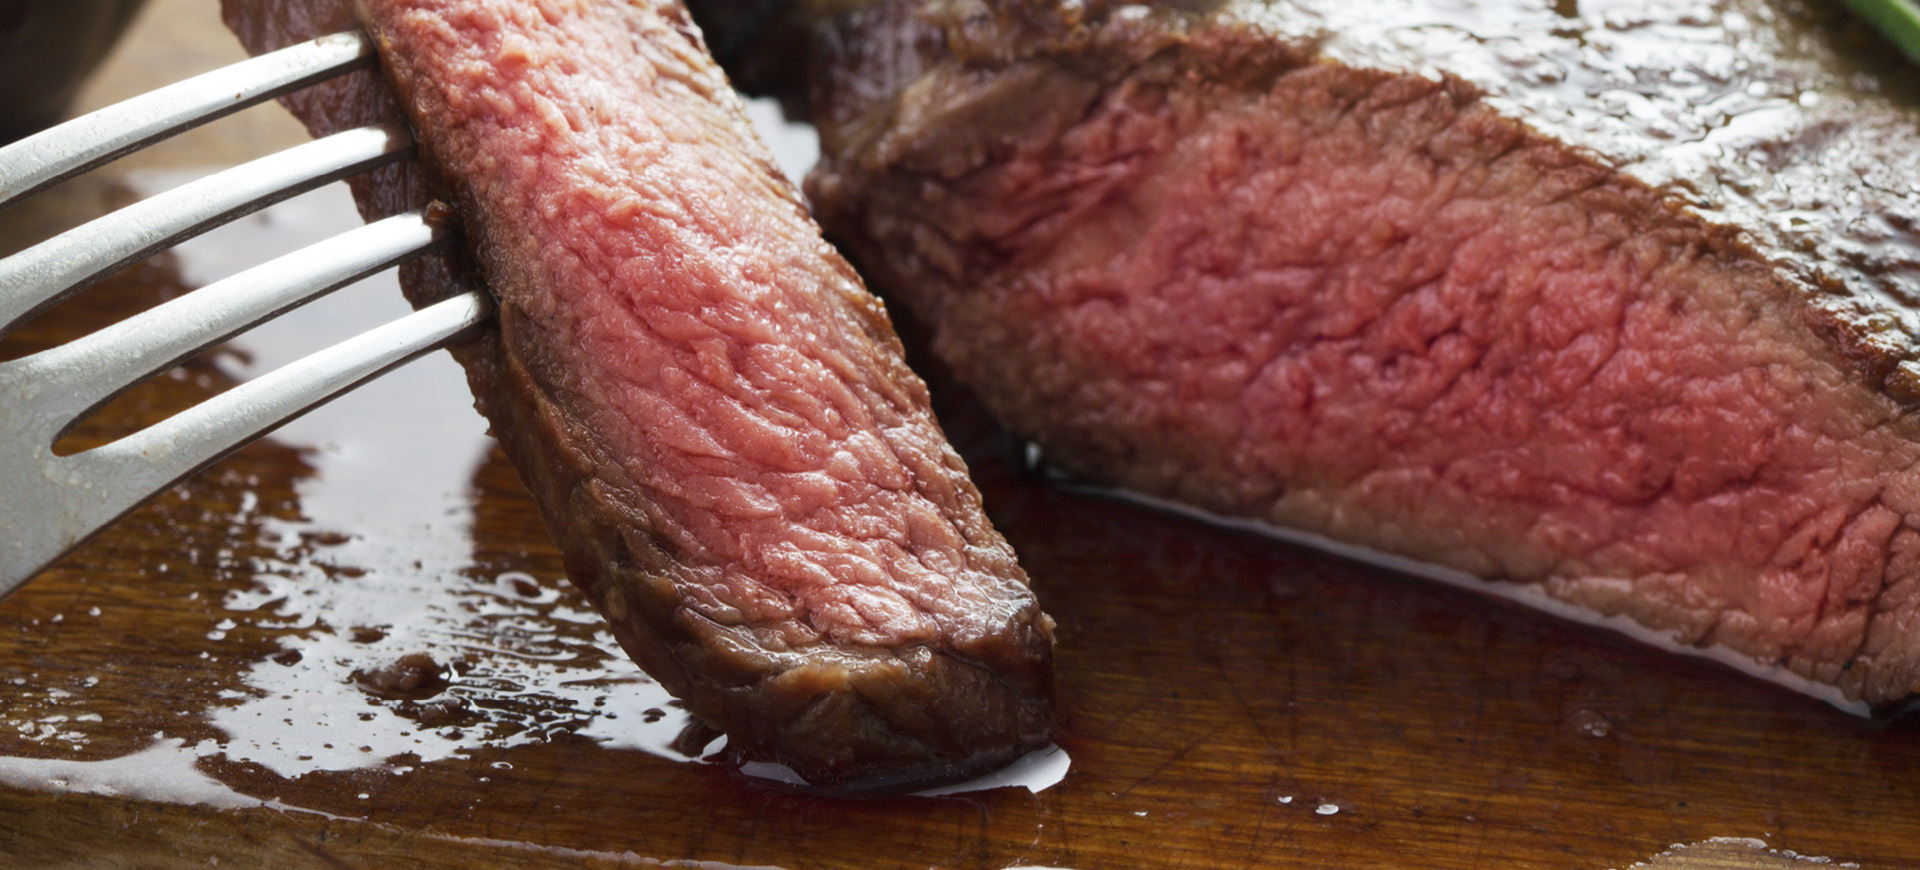 Skillet-Fried Porterhouse with Bourbon-Chipotle Butter